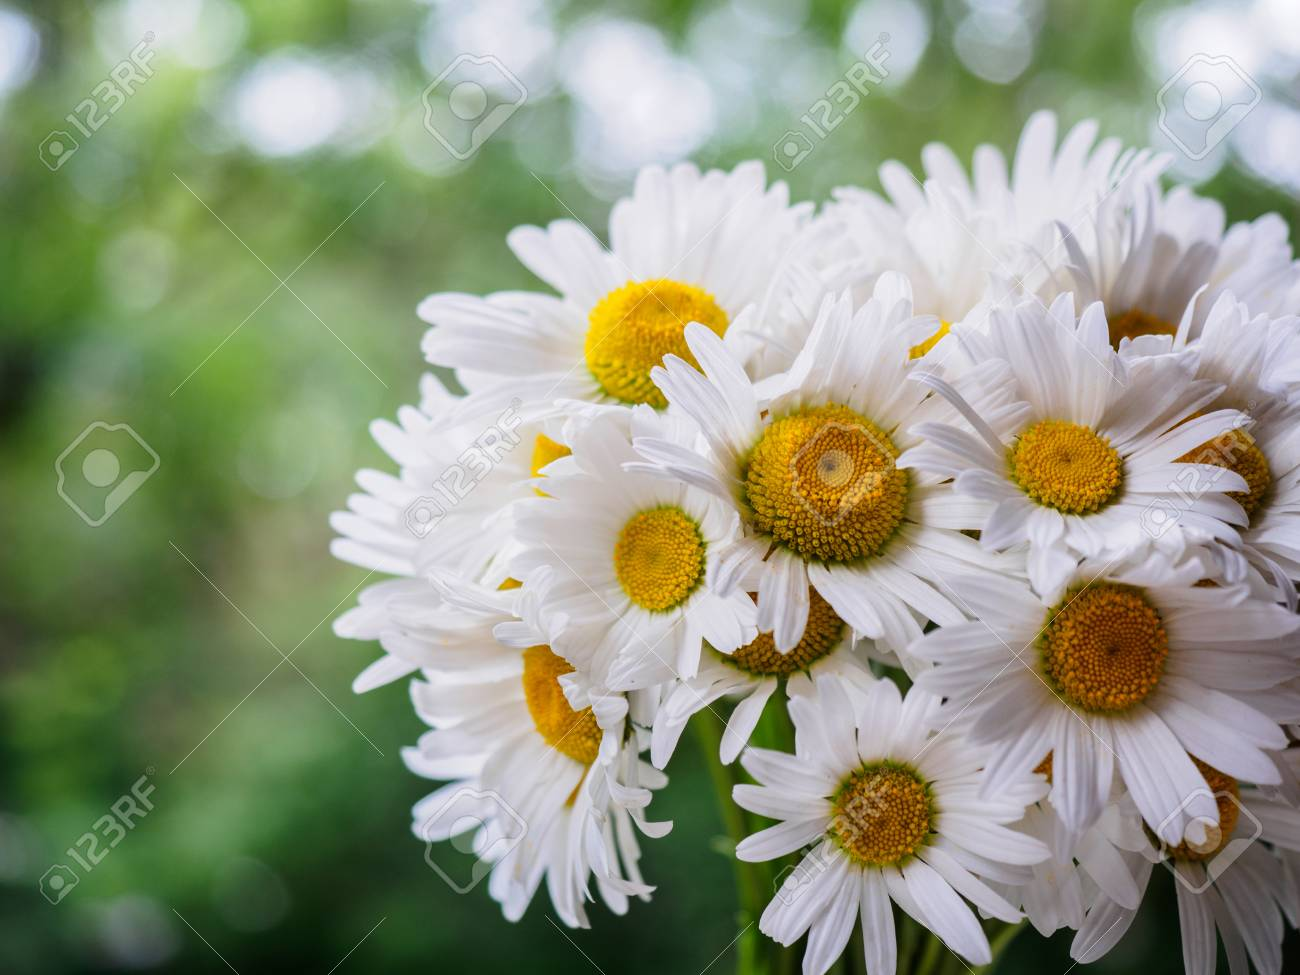 A bouquet of white field daisies on a green blurred background a bouquet of white field daisies on a green blurred background flowers with white petals mightylinksfo